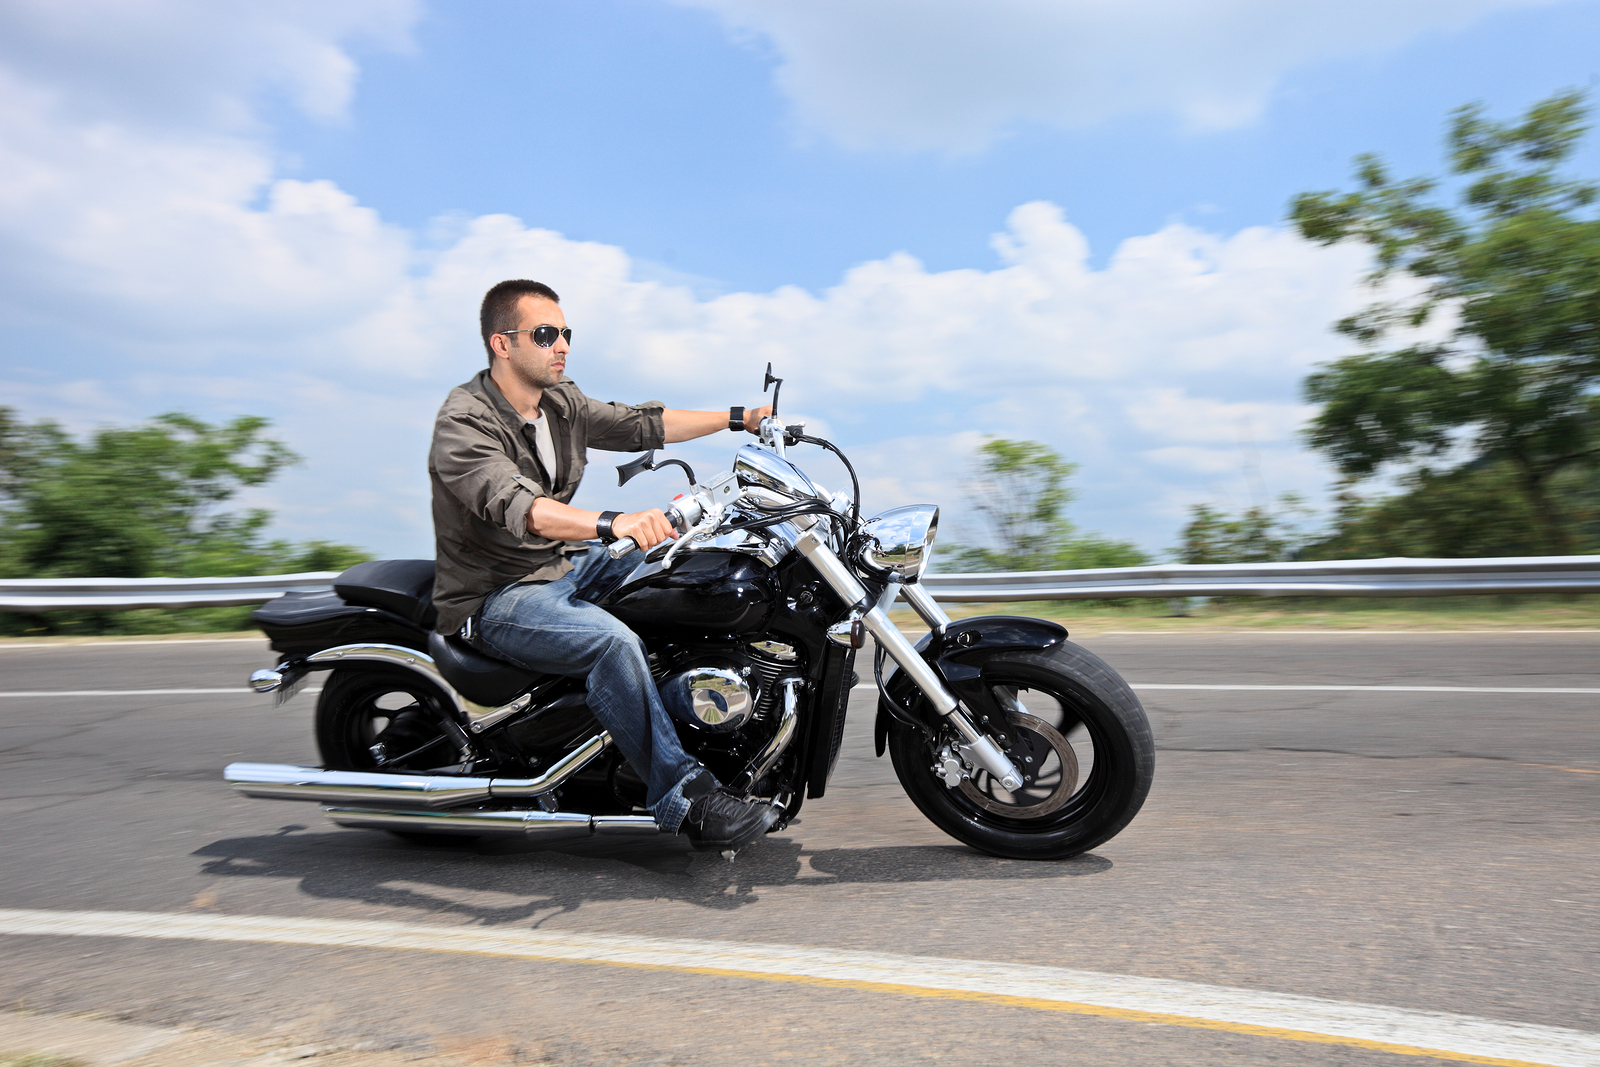 Common Injuries Caused by Motorcycle Accidents - Ernst Law Group